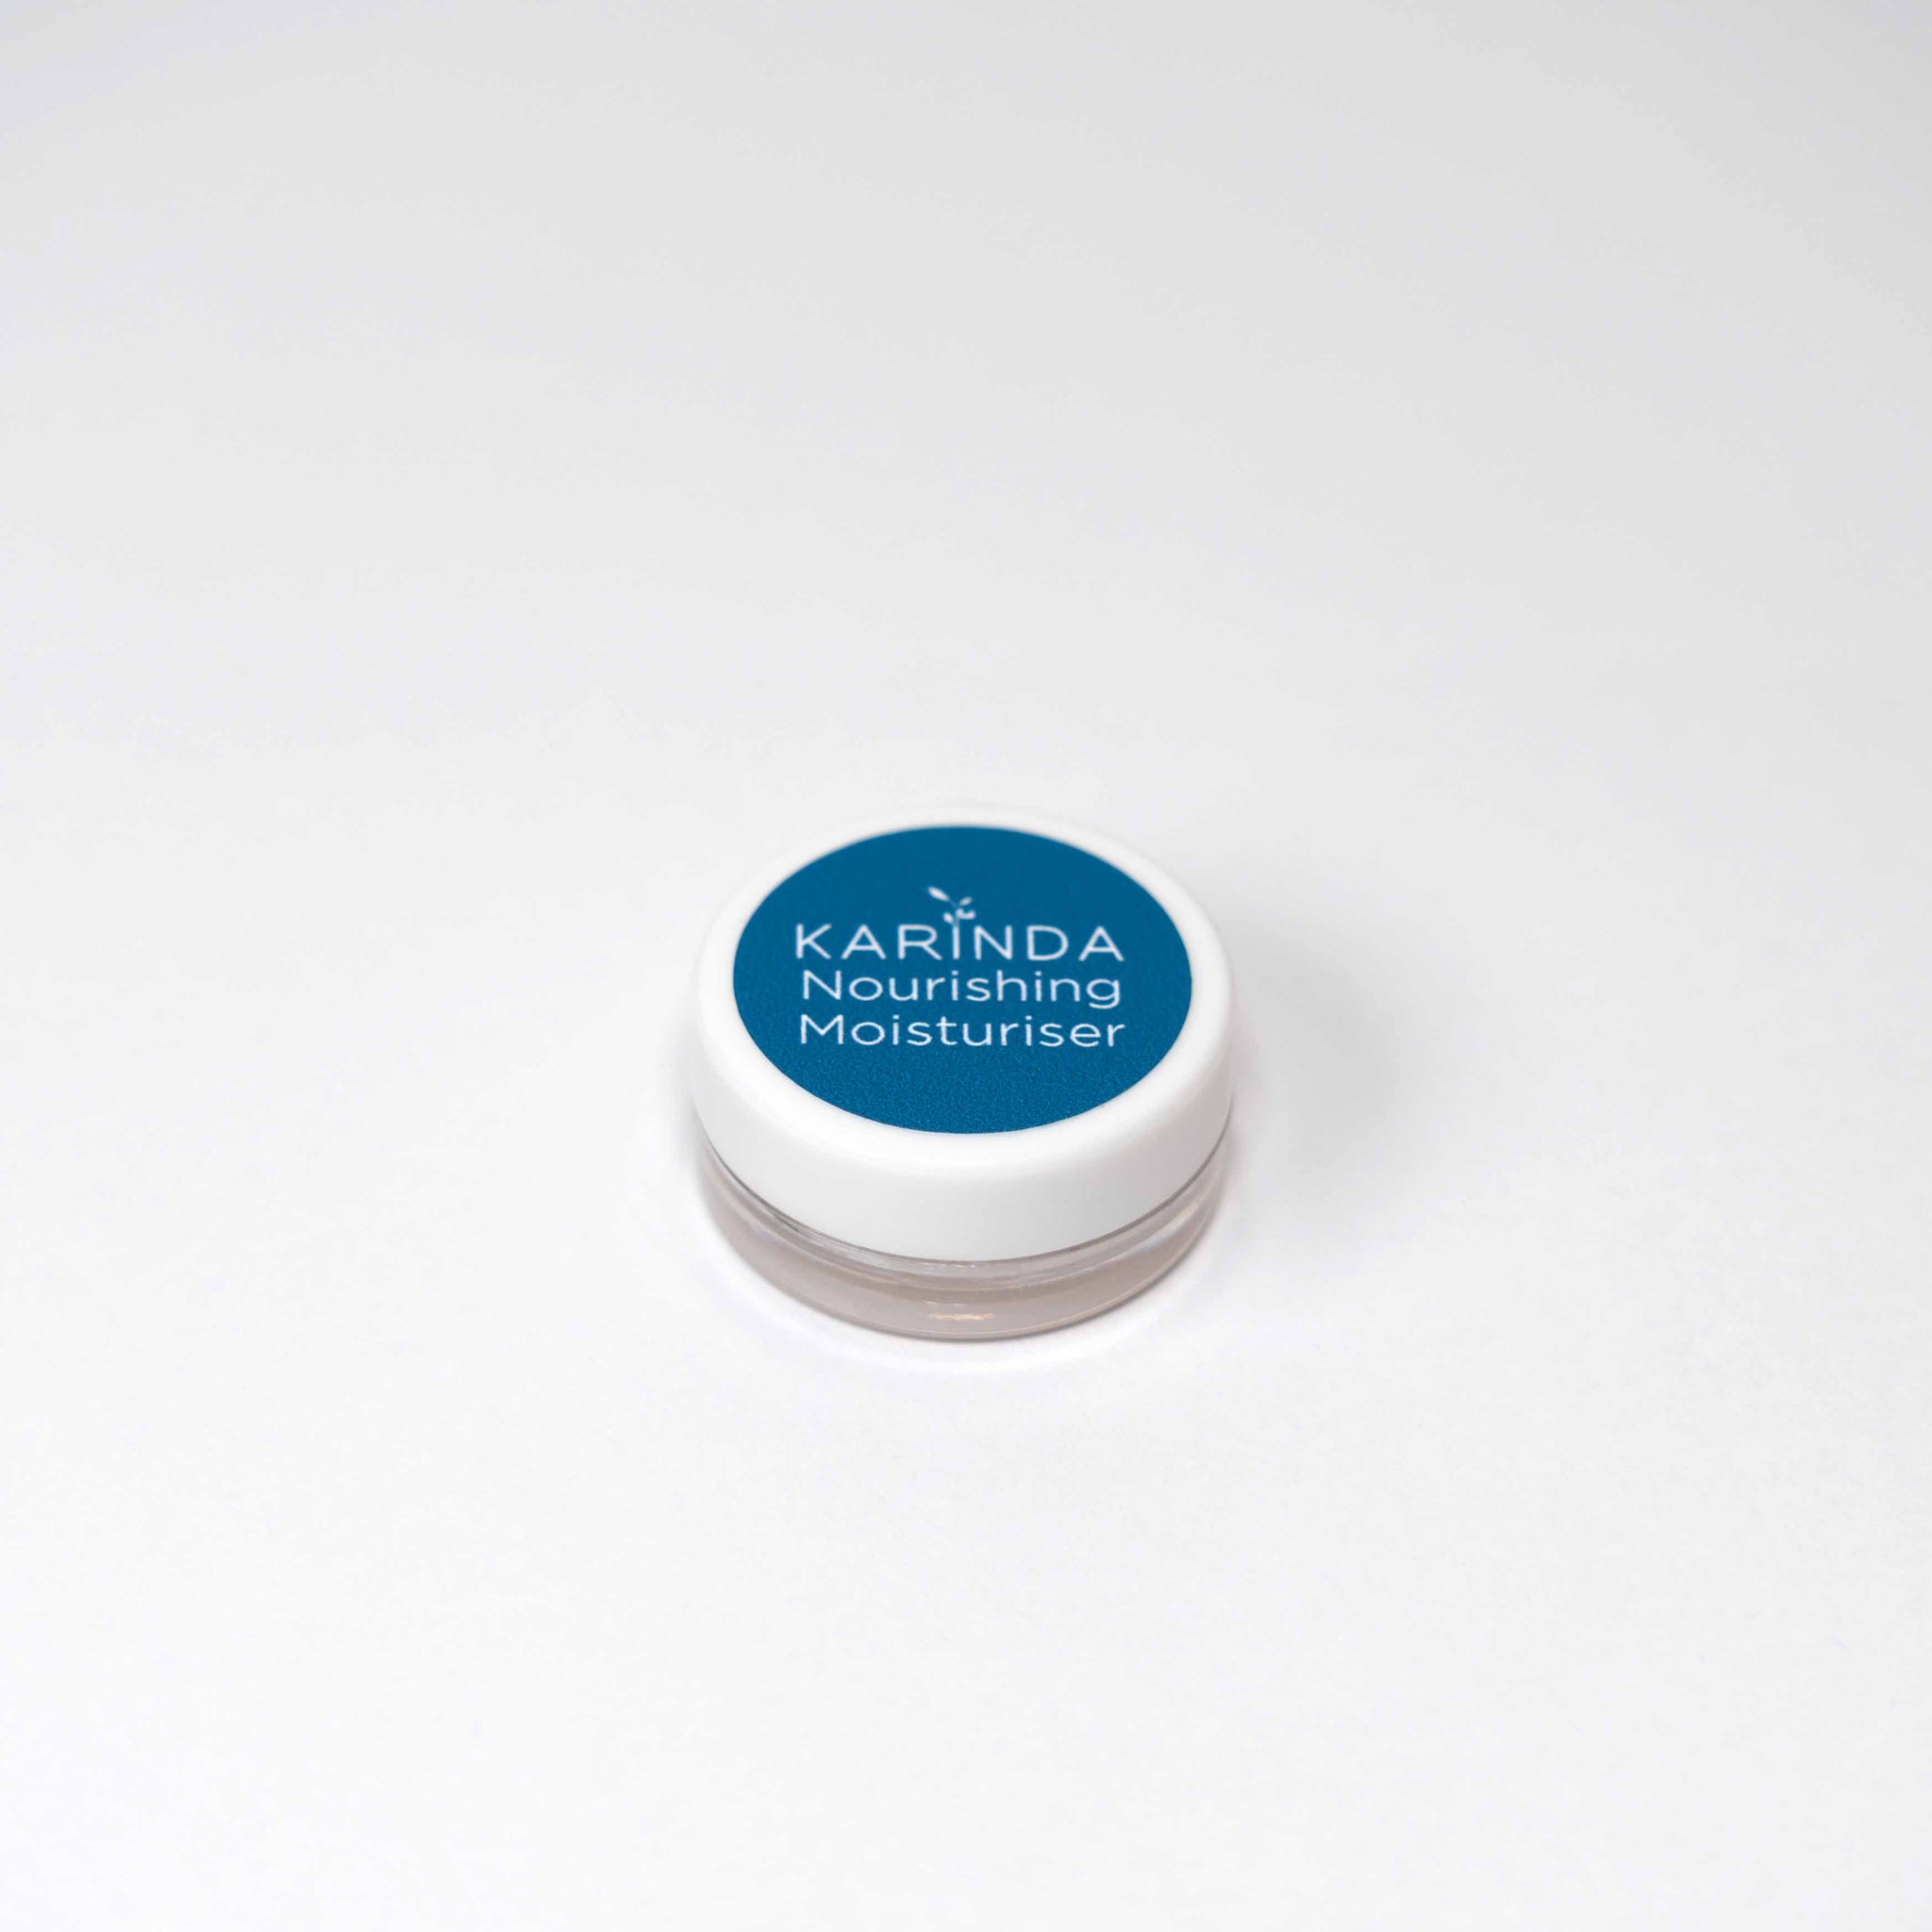 Nourishing Moisturiser Sample 3g